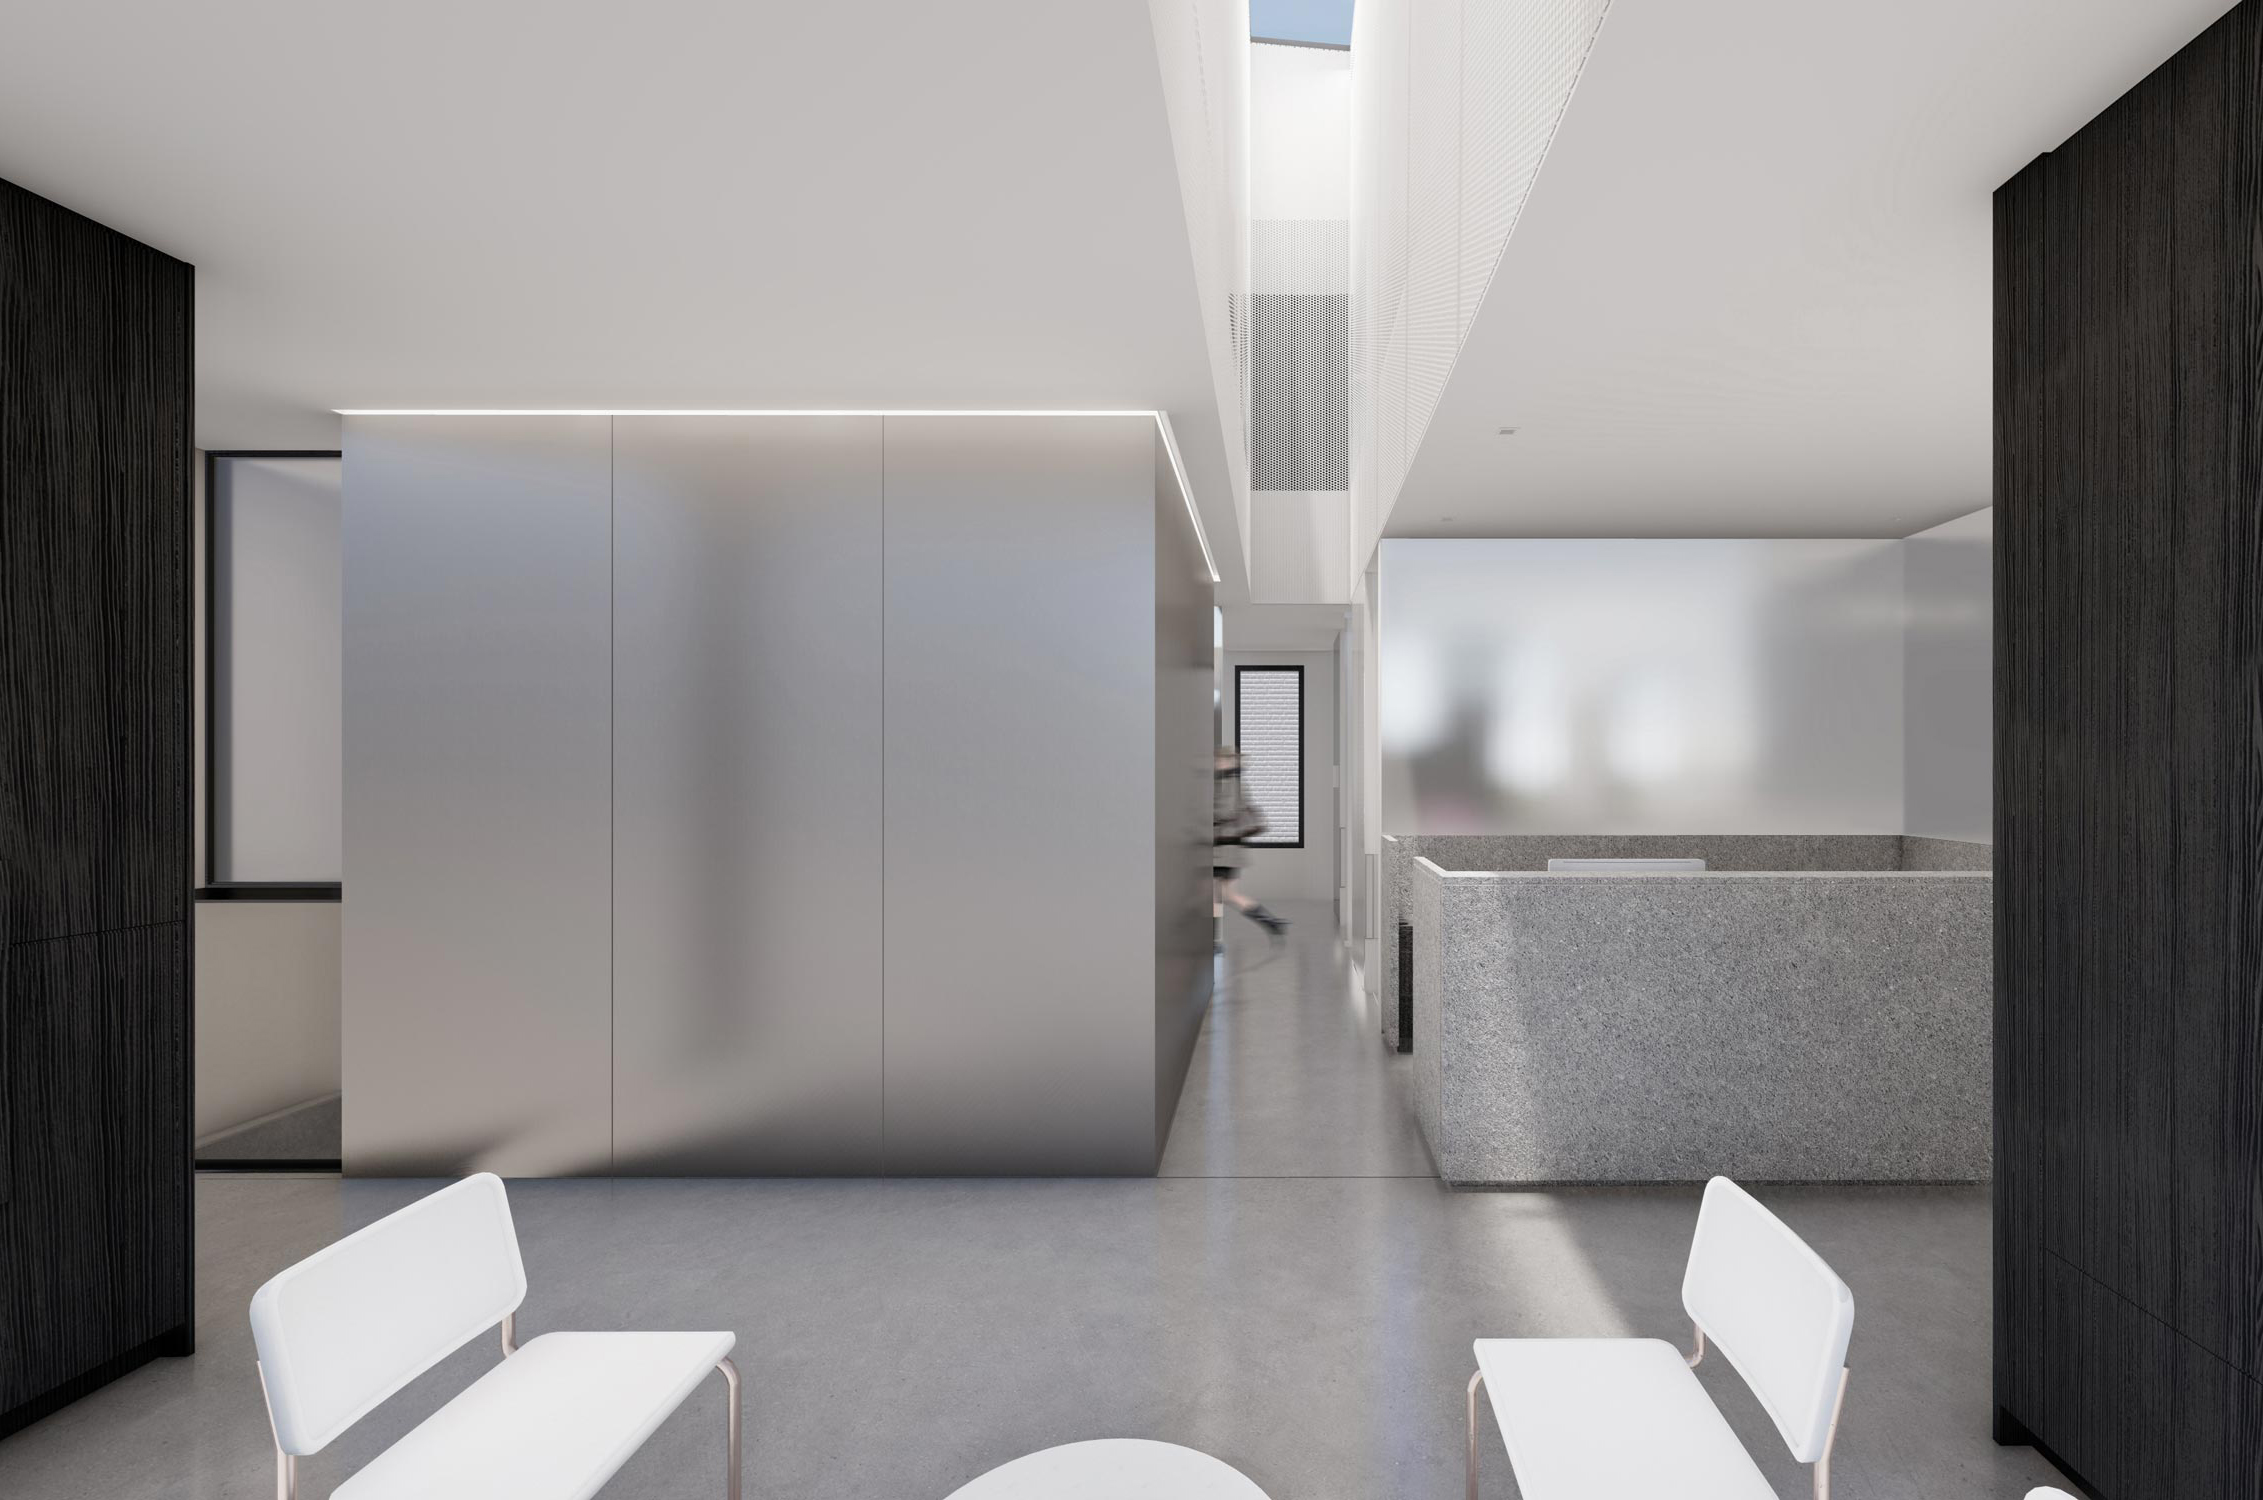 Dental clinic Outremont architecture project by naturehumaine architecture & design